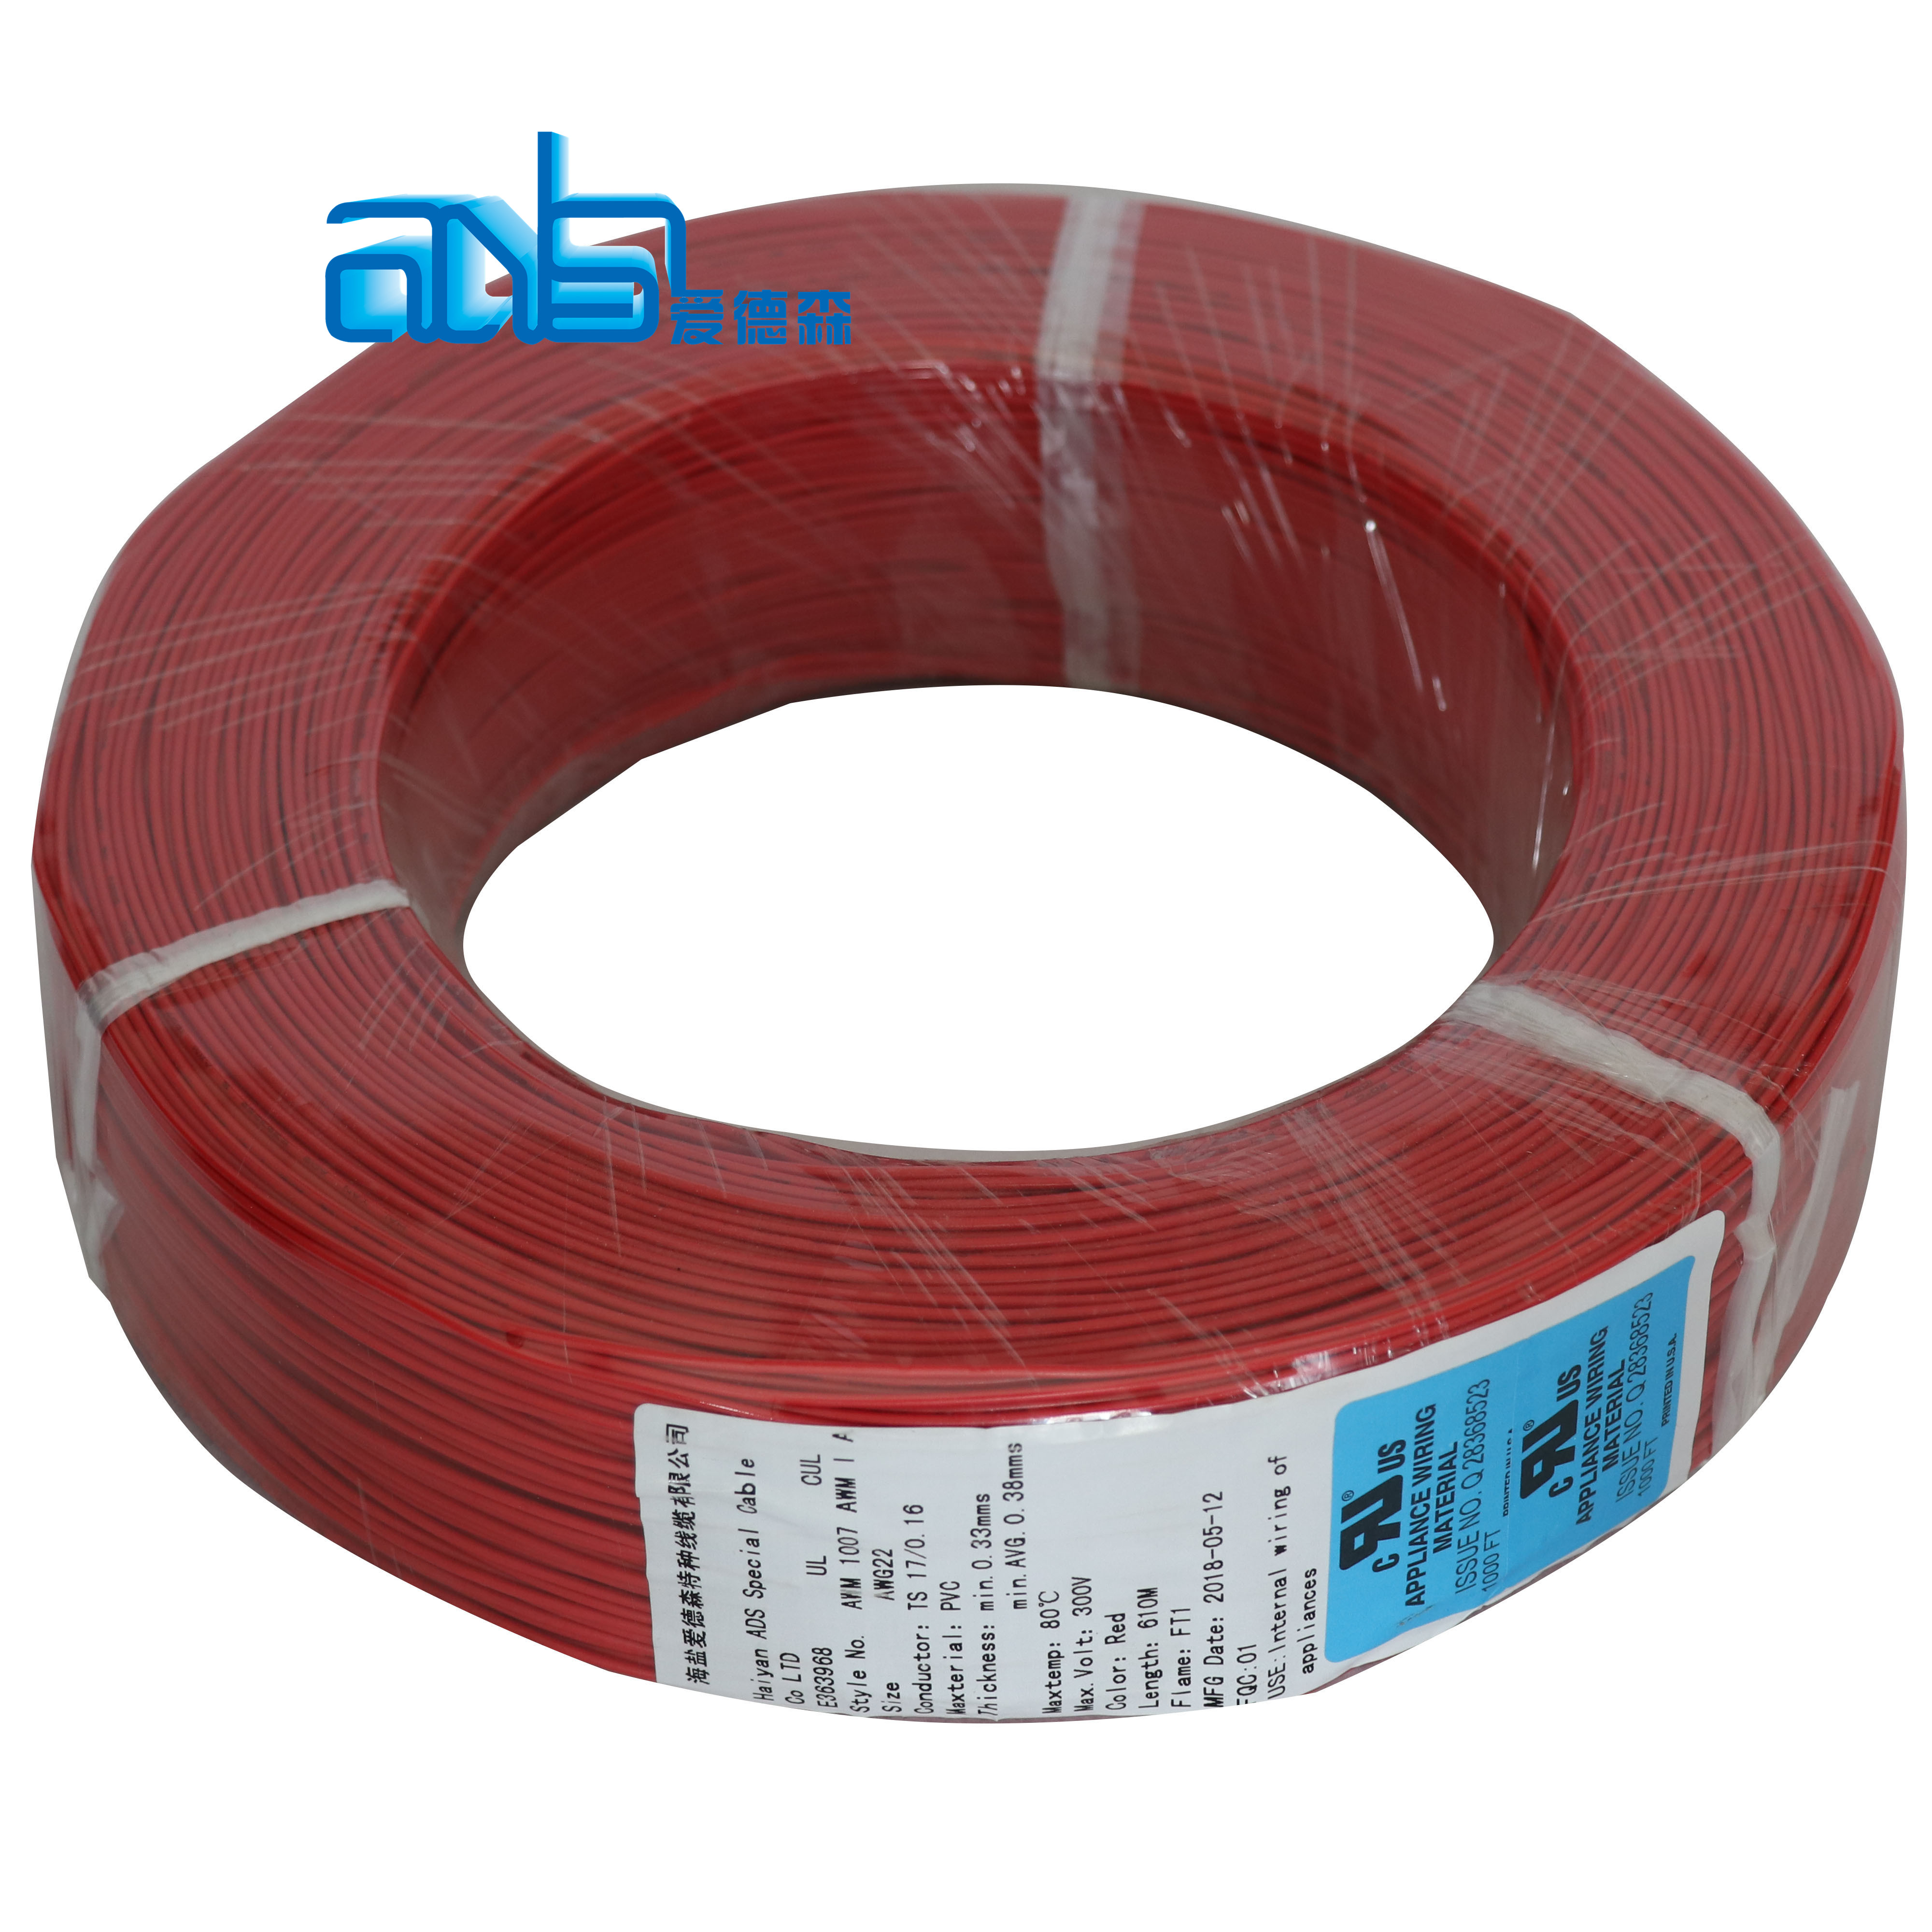 high quality wire 105c 600v ul1015 cable awm vw-1 14 awg solid <strong>copper</strong> wire